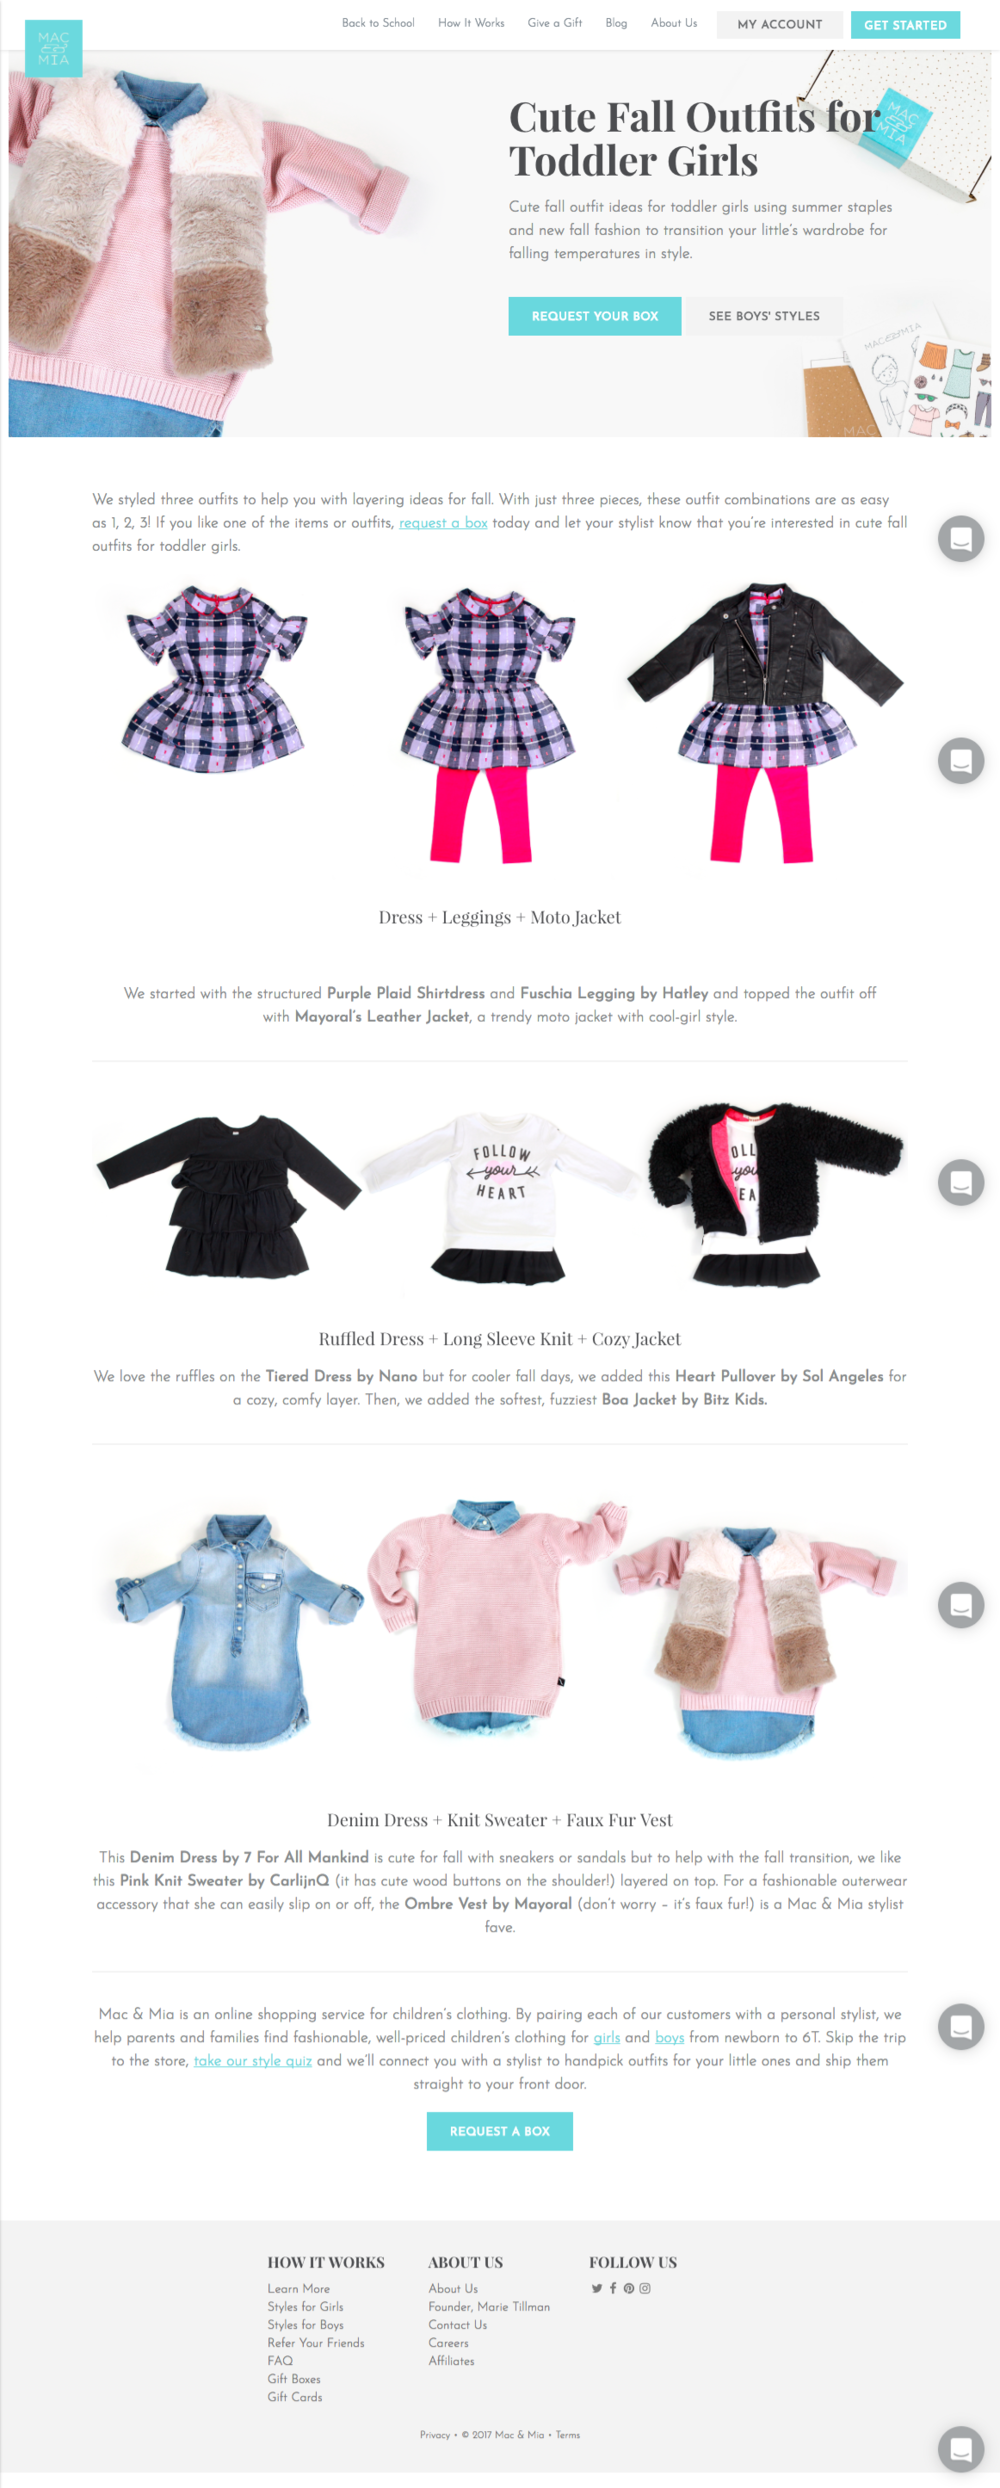 Cute Fall Outfits for Toddler Girls